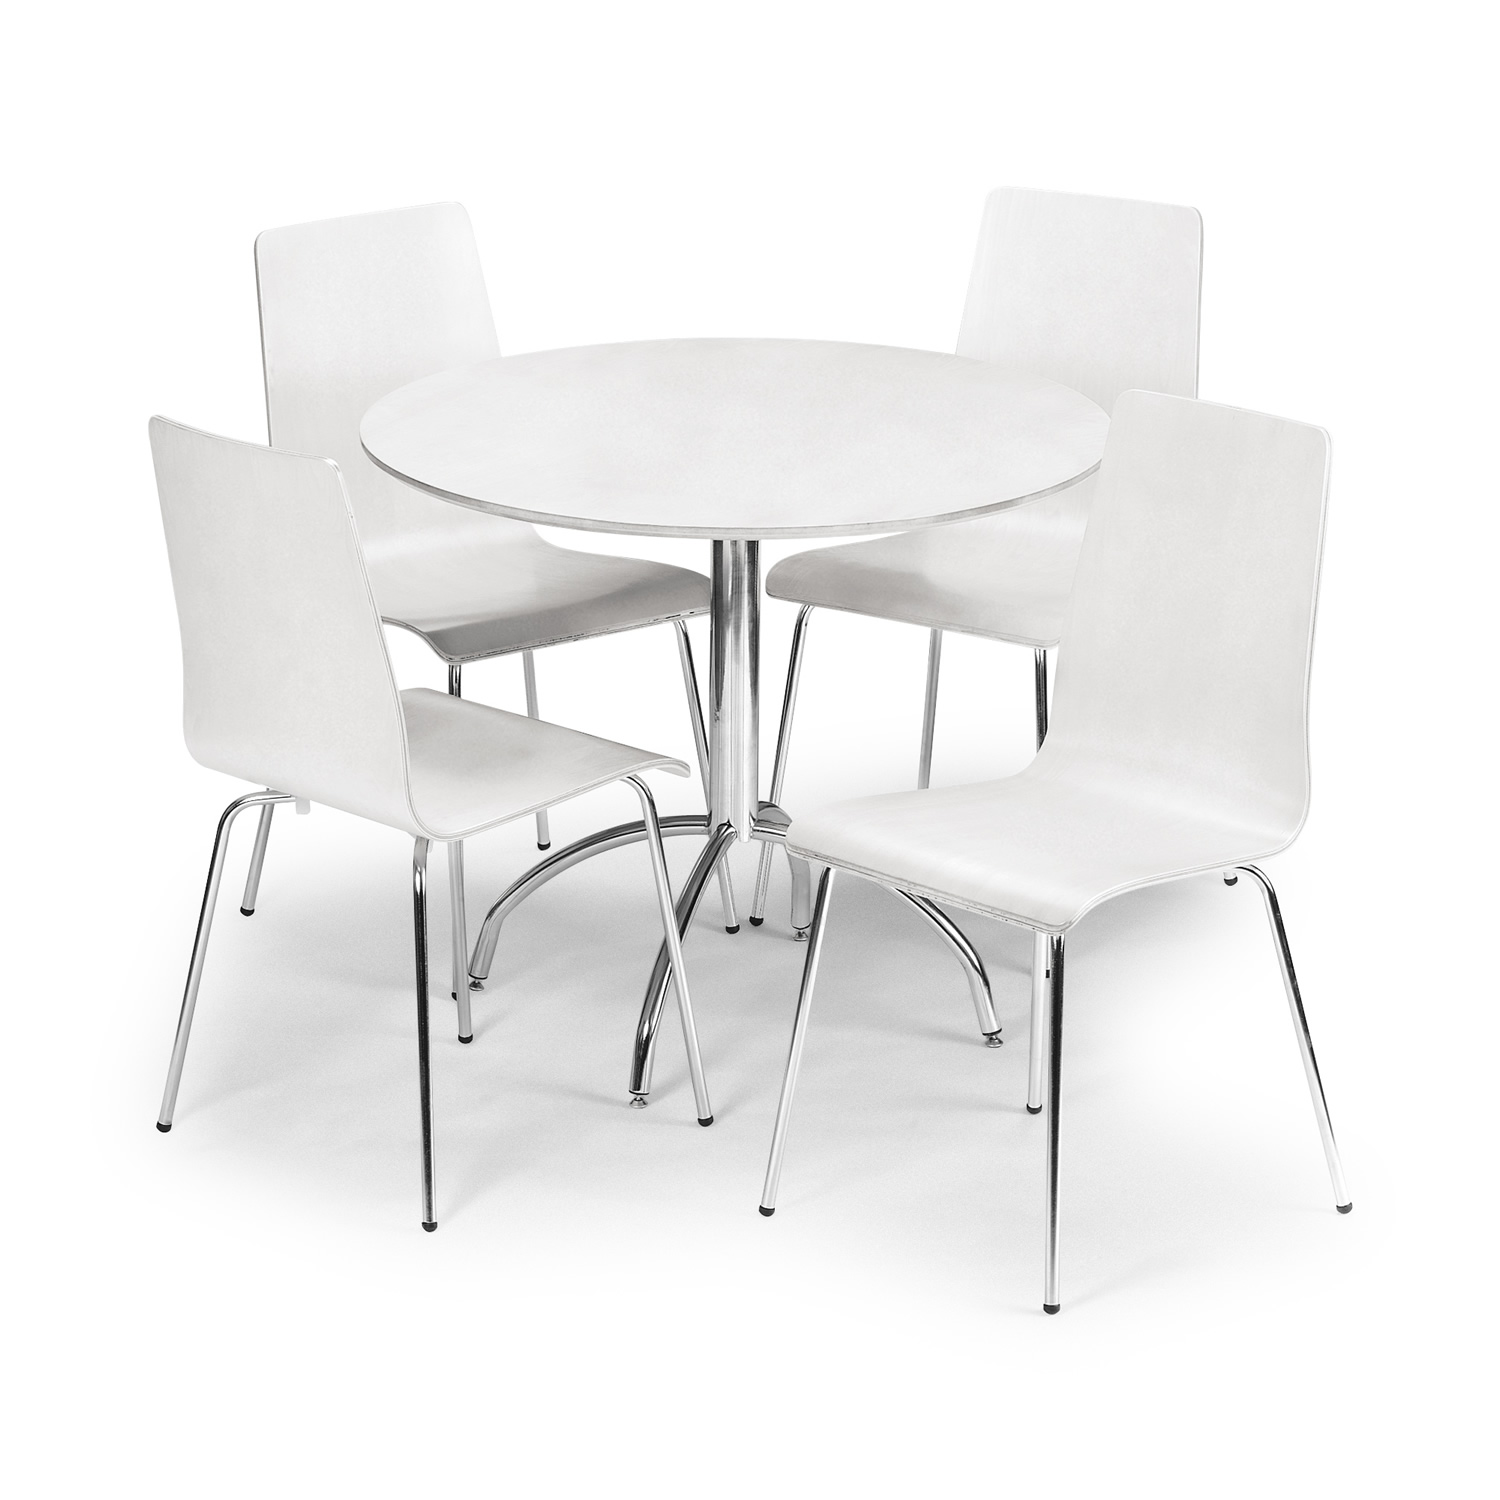 Round Kitchen Table And Chairs: Beautiful White Round Kitchen Table And Chairs